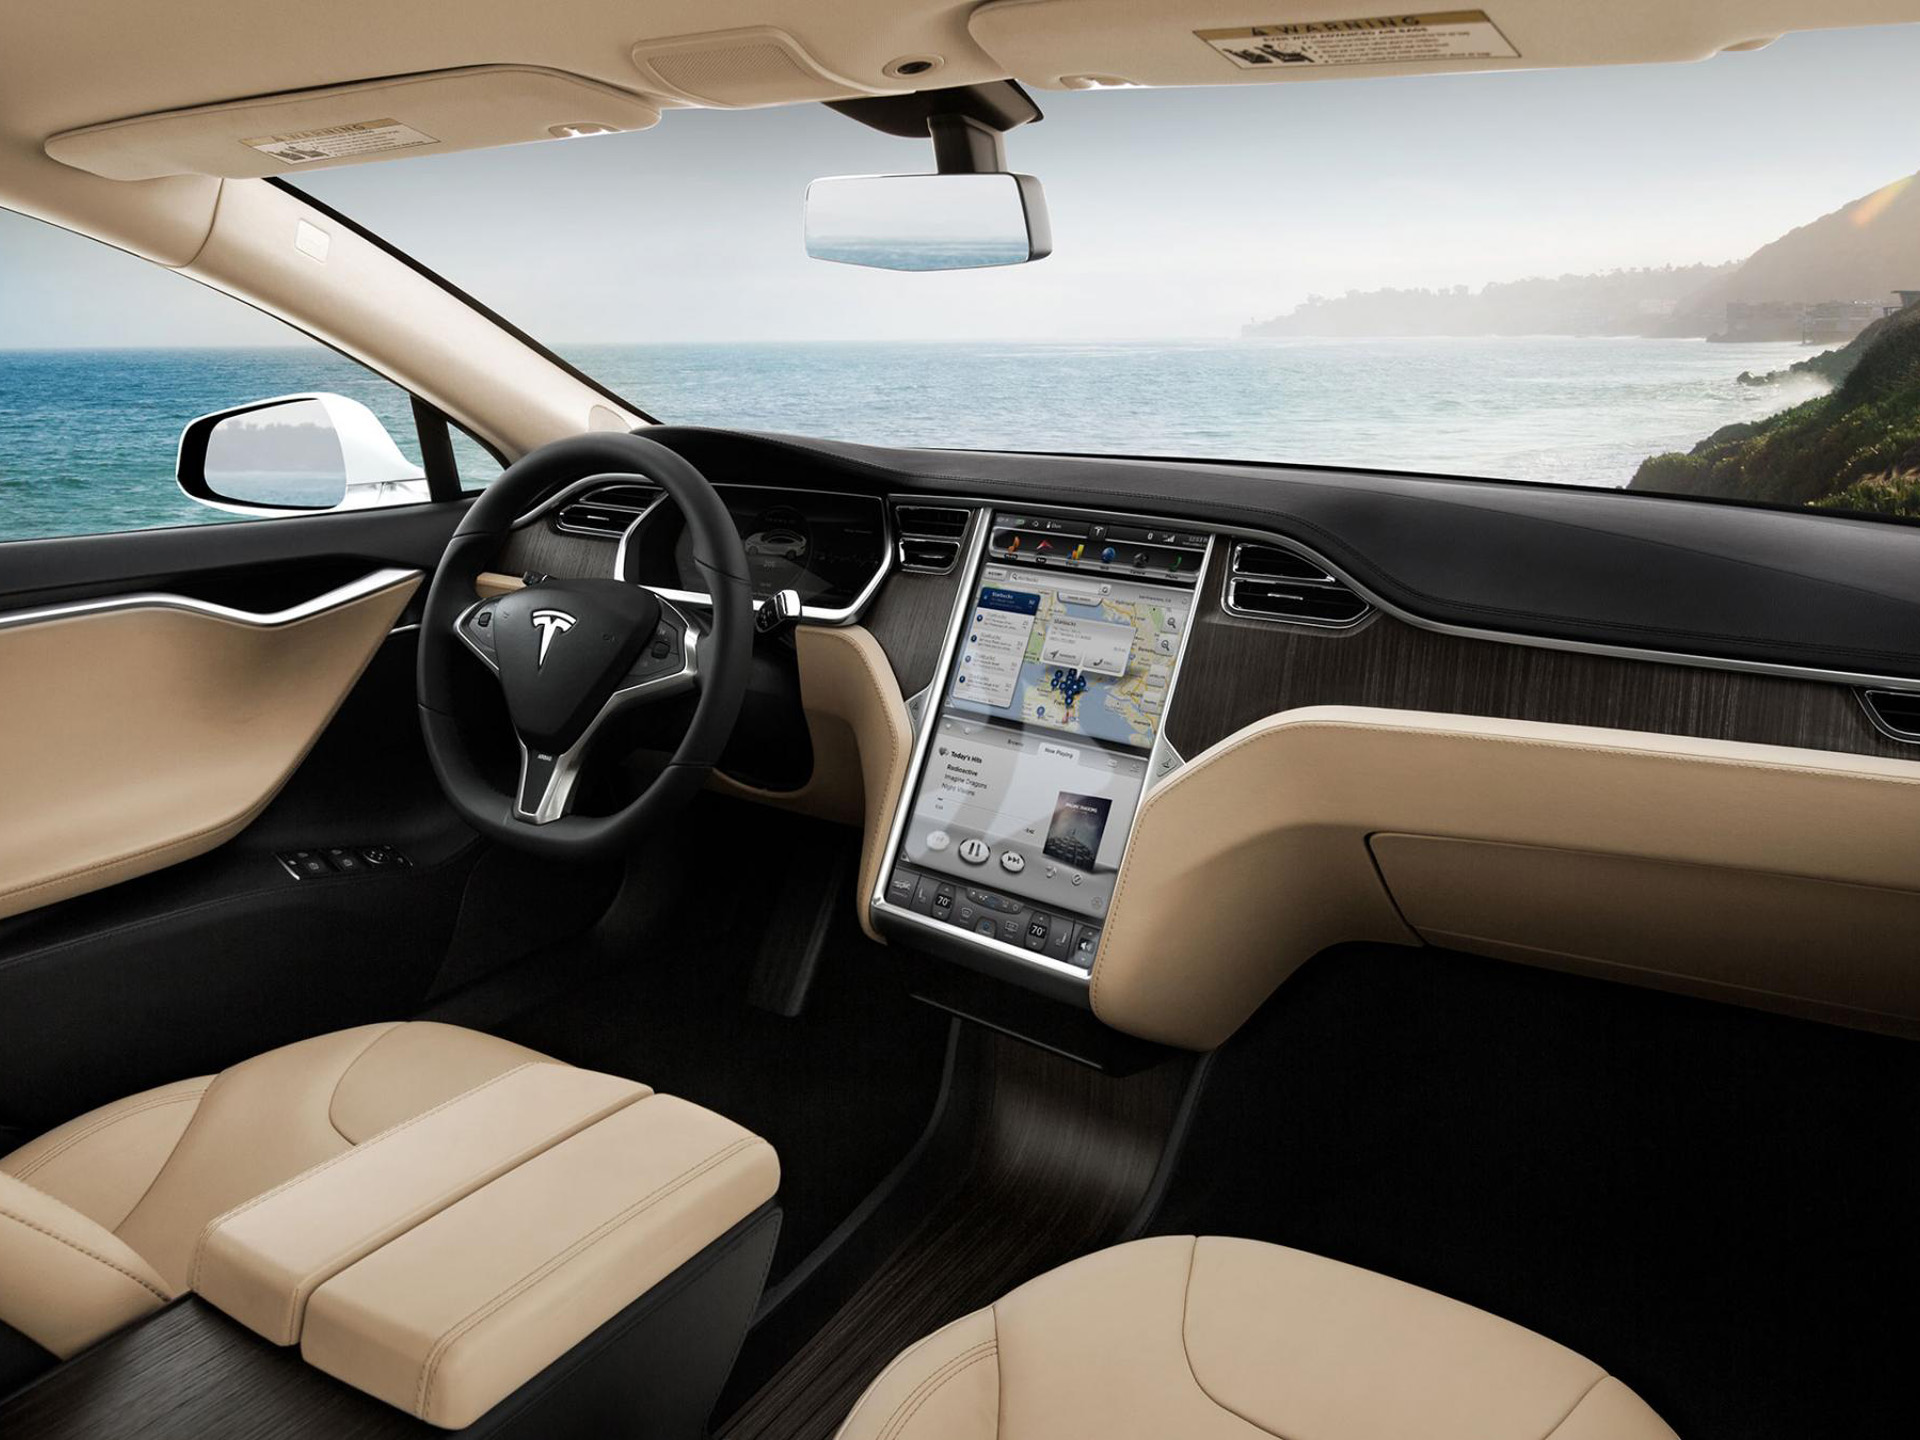 2013 Tesla Model S supercar interior g wallpaper background